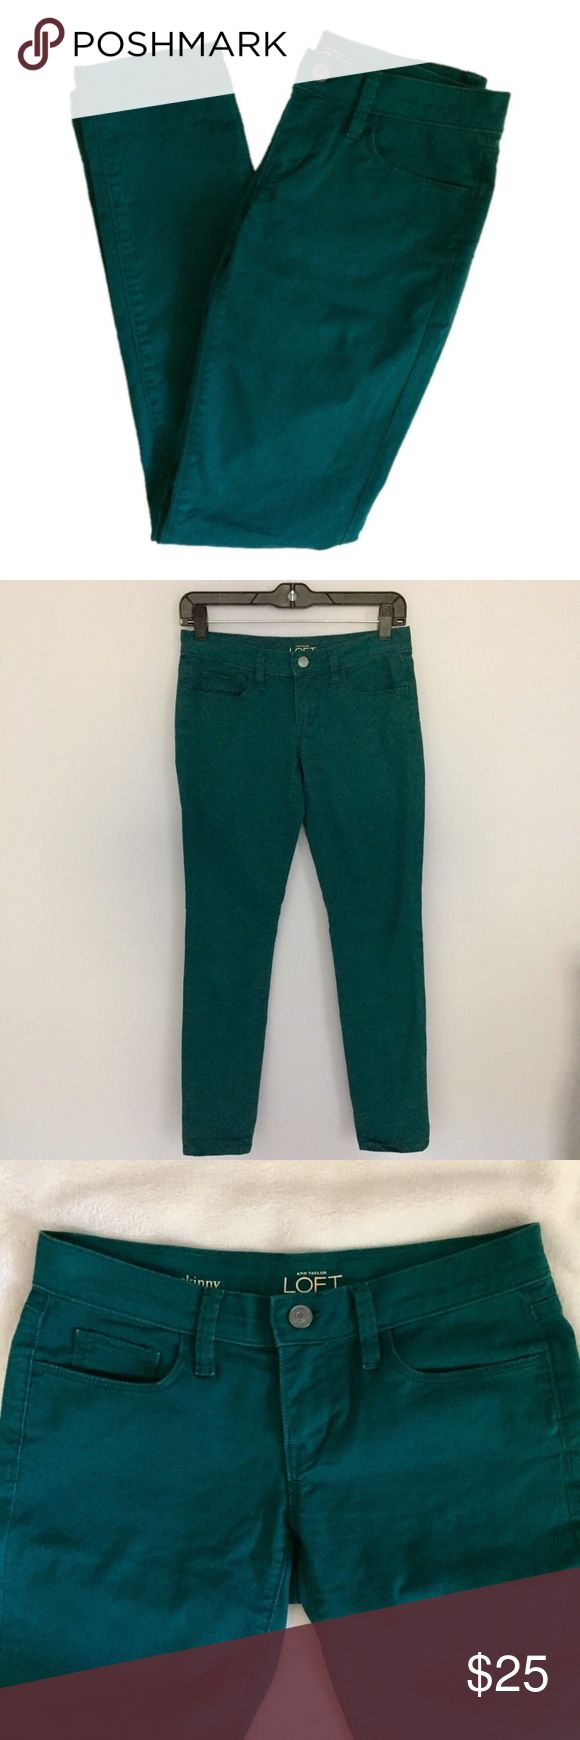 "Ann Taylor LOFT Dark Green Skinny Jeans Ann Taylor LOFT Dark Green Skinny Jeans. Size 24 or size 00 equivalent. Inseam 30"" Waist 27.5"" Hips 35.5"" Excellent Condition! Let me know if you have any questions! ✅ I LOVE OFFERS ✅ INSTAGRAM: @ocaputostyle LOFT Jeans Skinny"